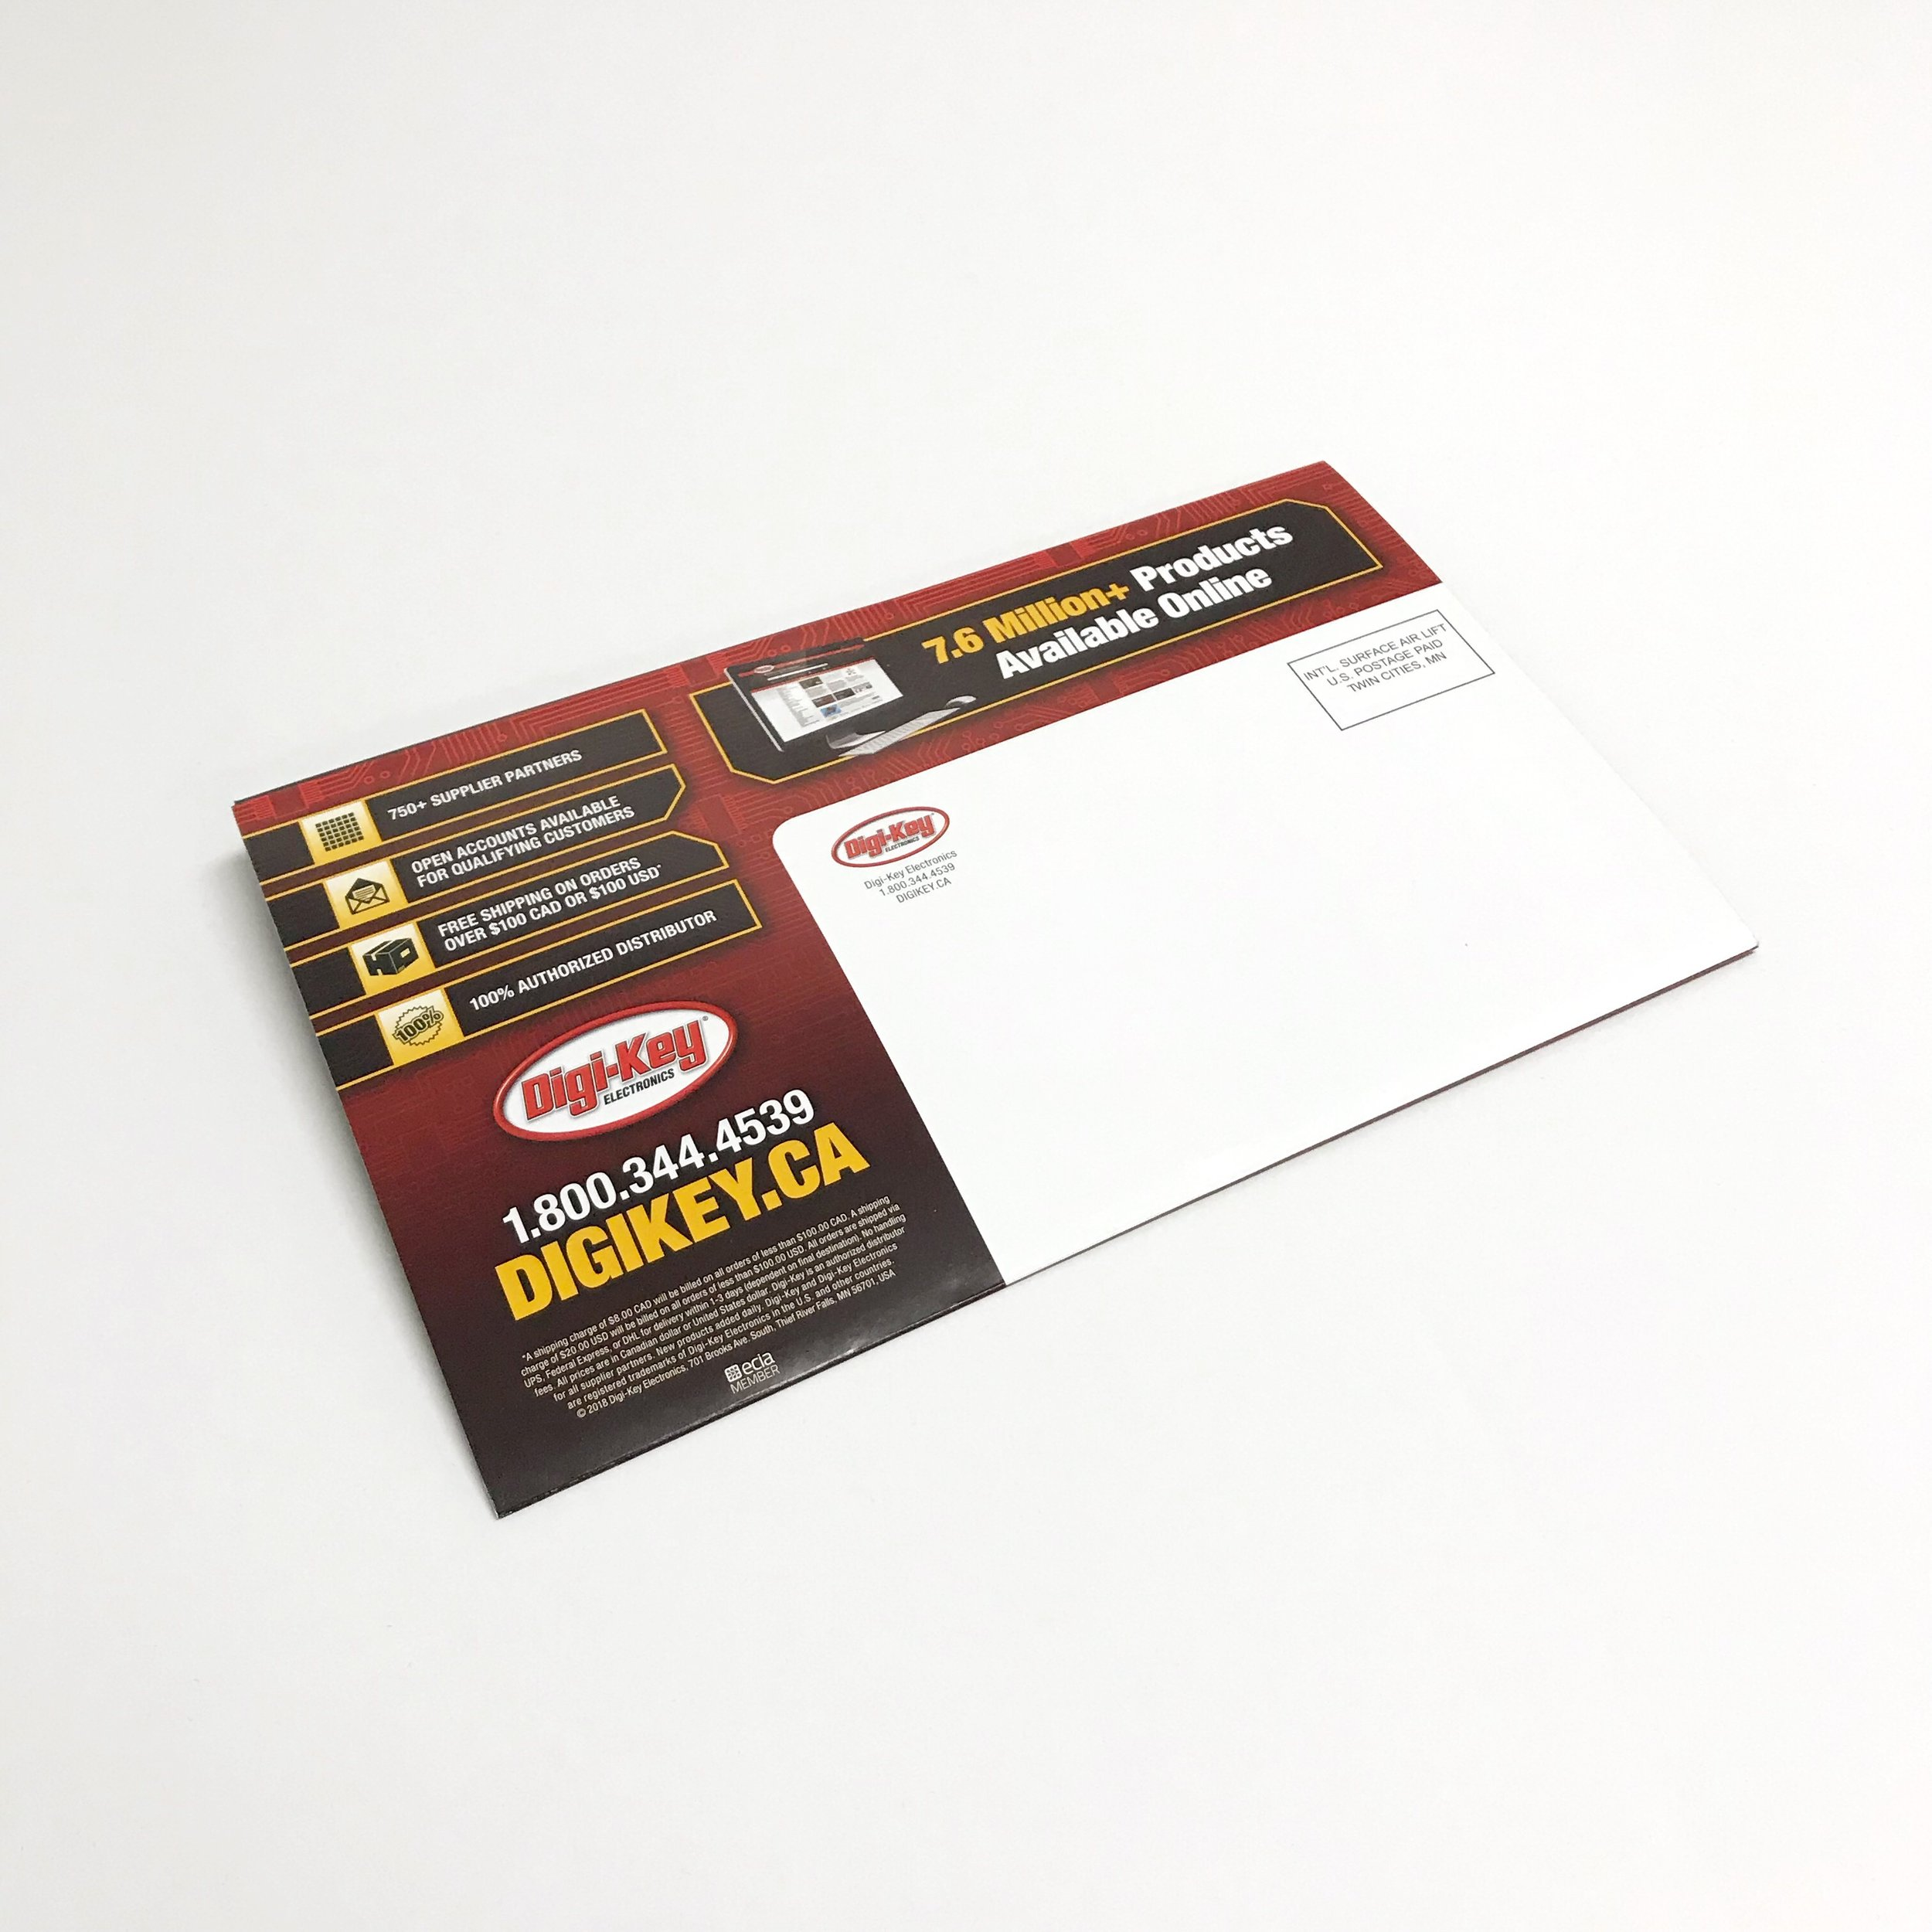 High quality professional corporate mailing solutions printed in Minnesota